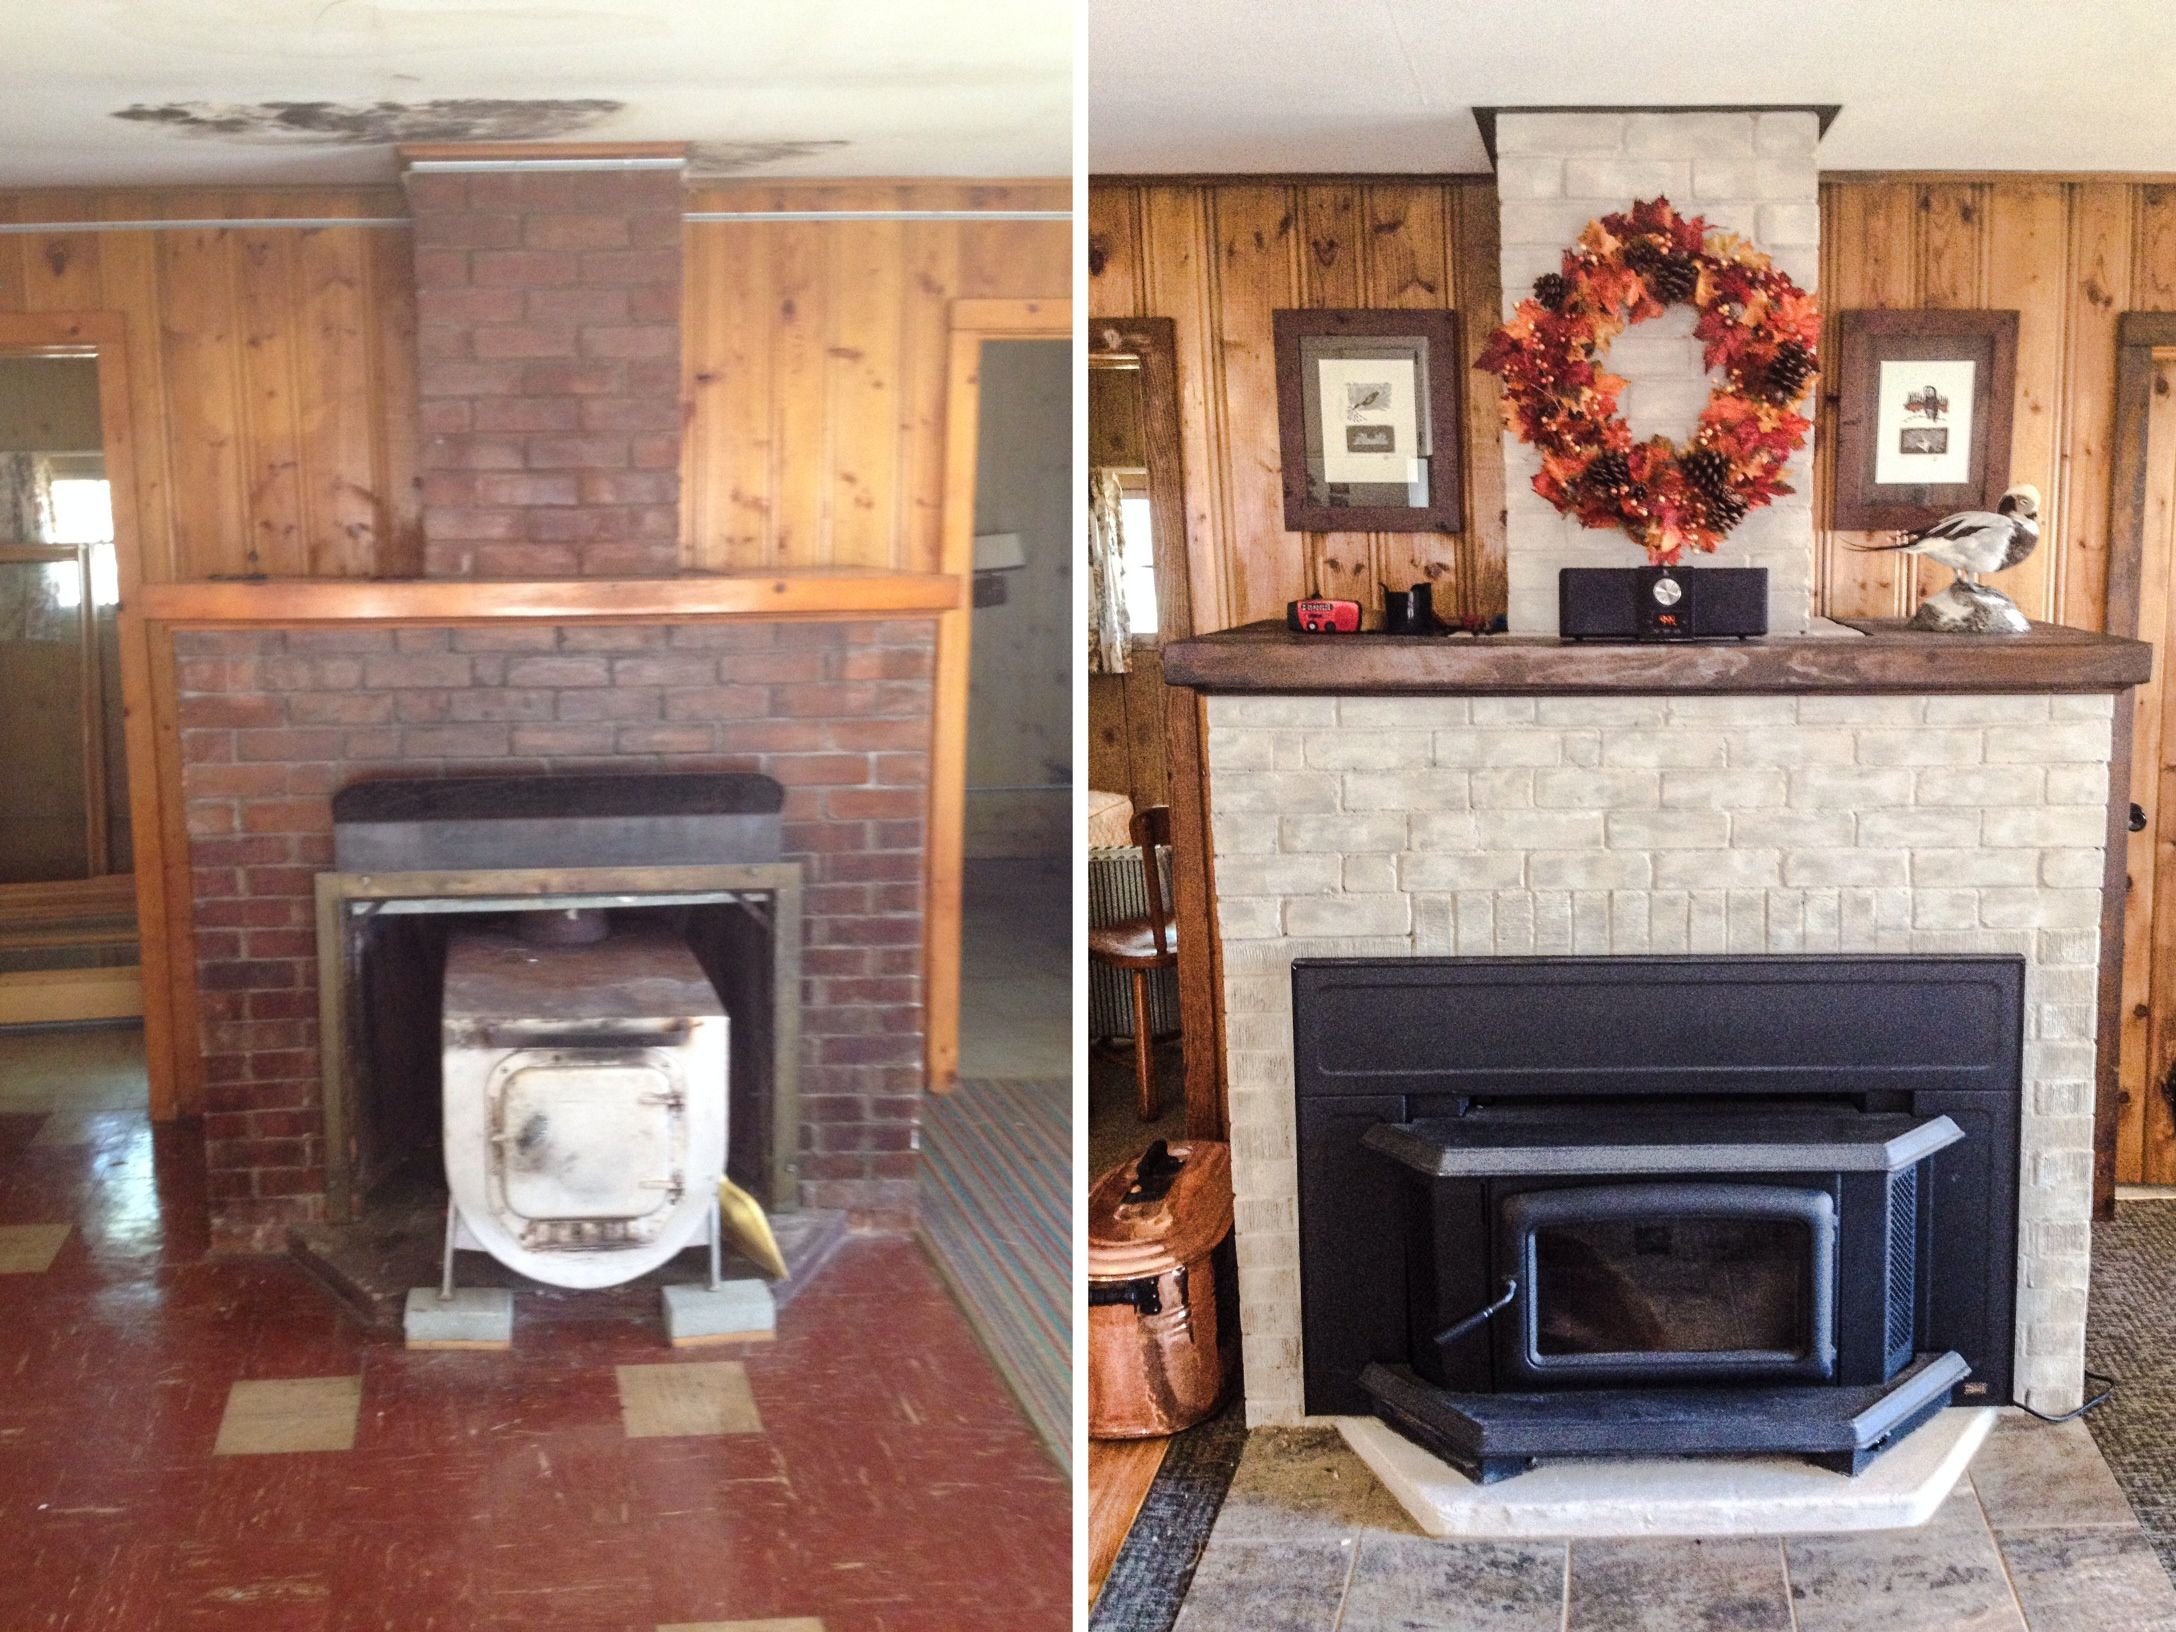 Refurbished My Red Brick Fireplace With Brik Anew